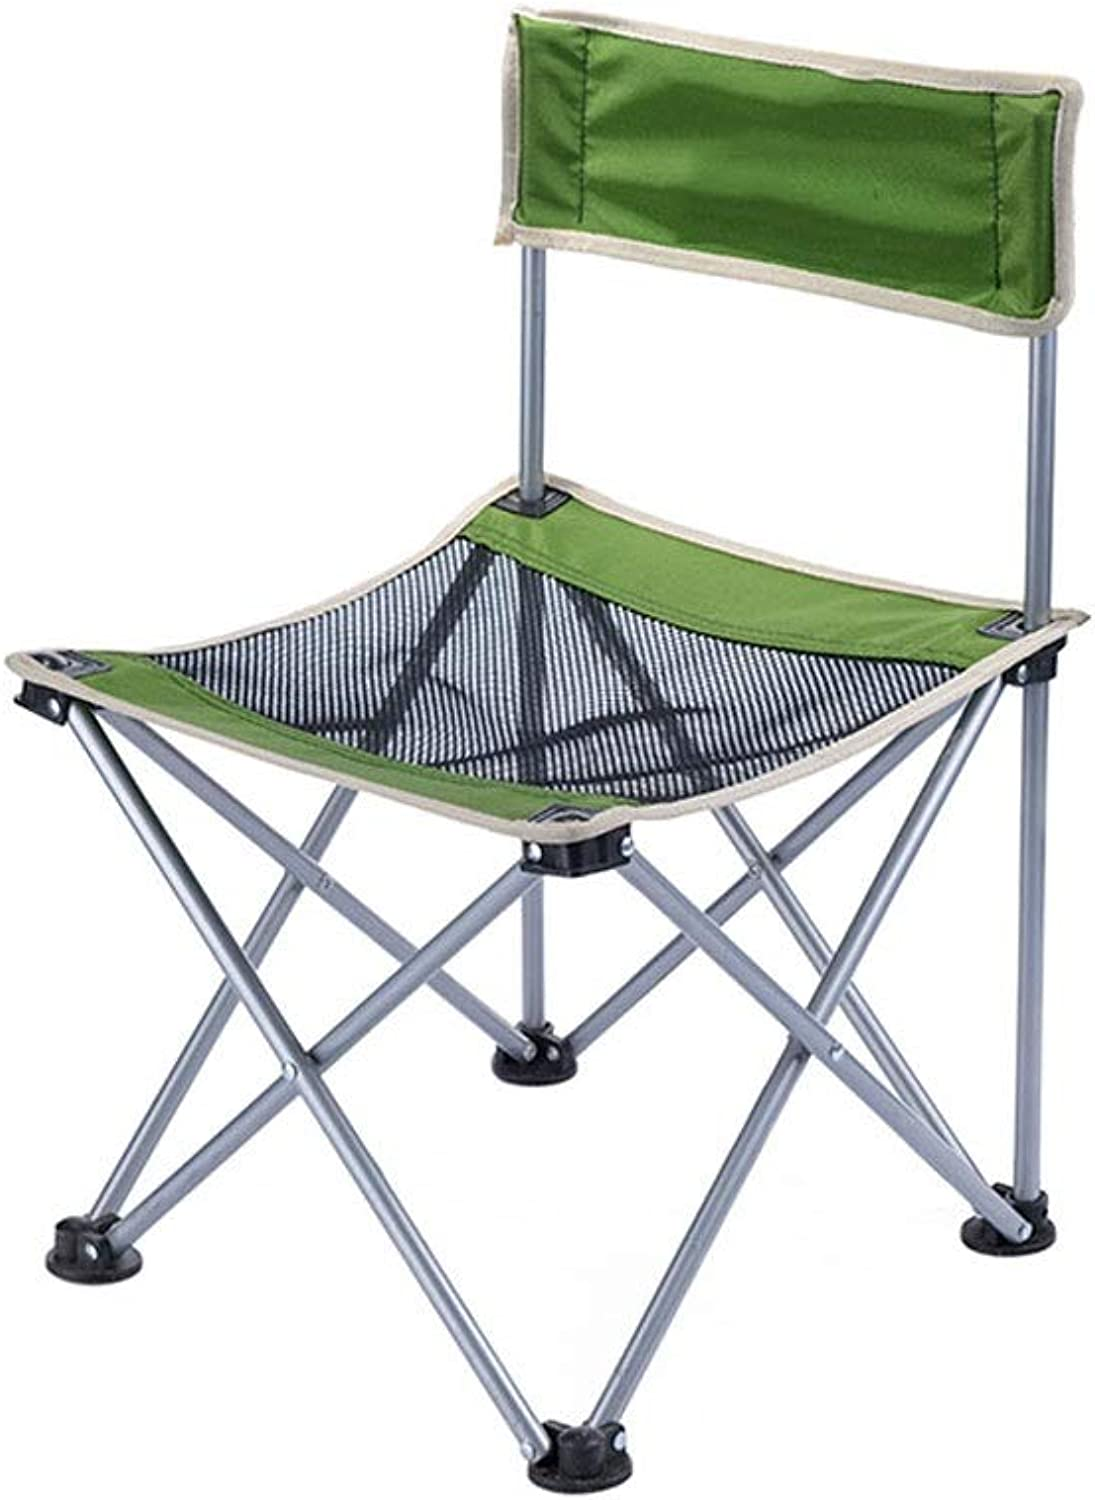 Camping Chair Breathable mesh Waterproof Nylon Cloth Outdoor Portable Folding Chair Stool Outdoor Sketch Stool NonSlip Camping Fishing Beach Chair Folding Chair